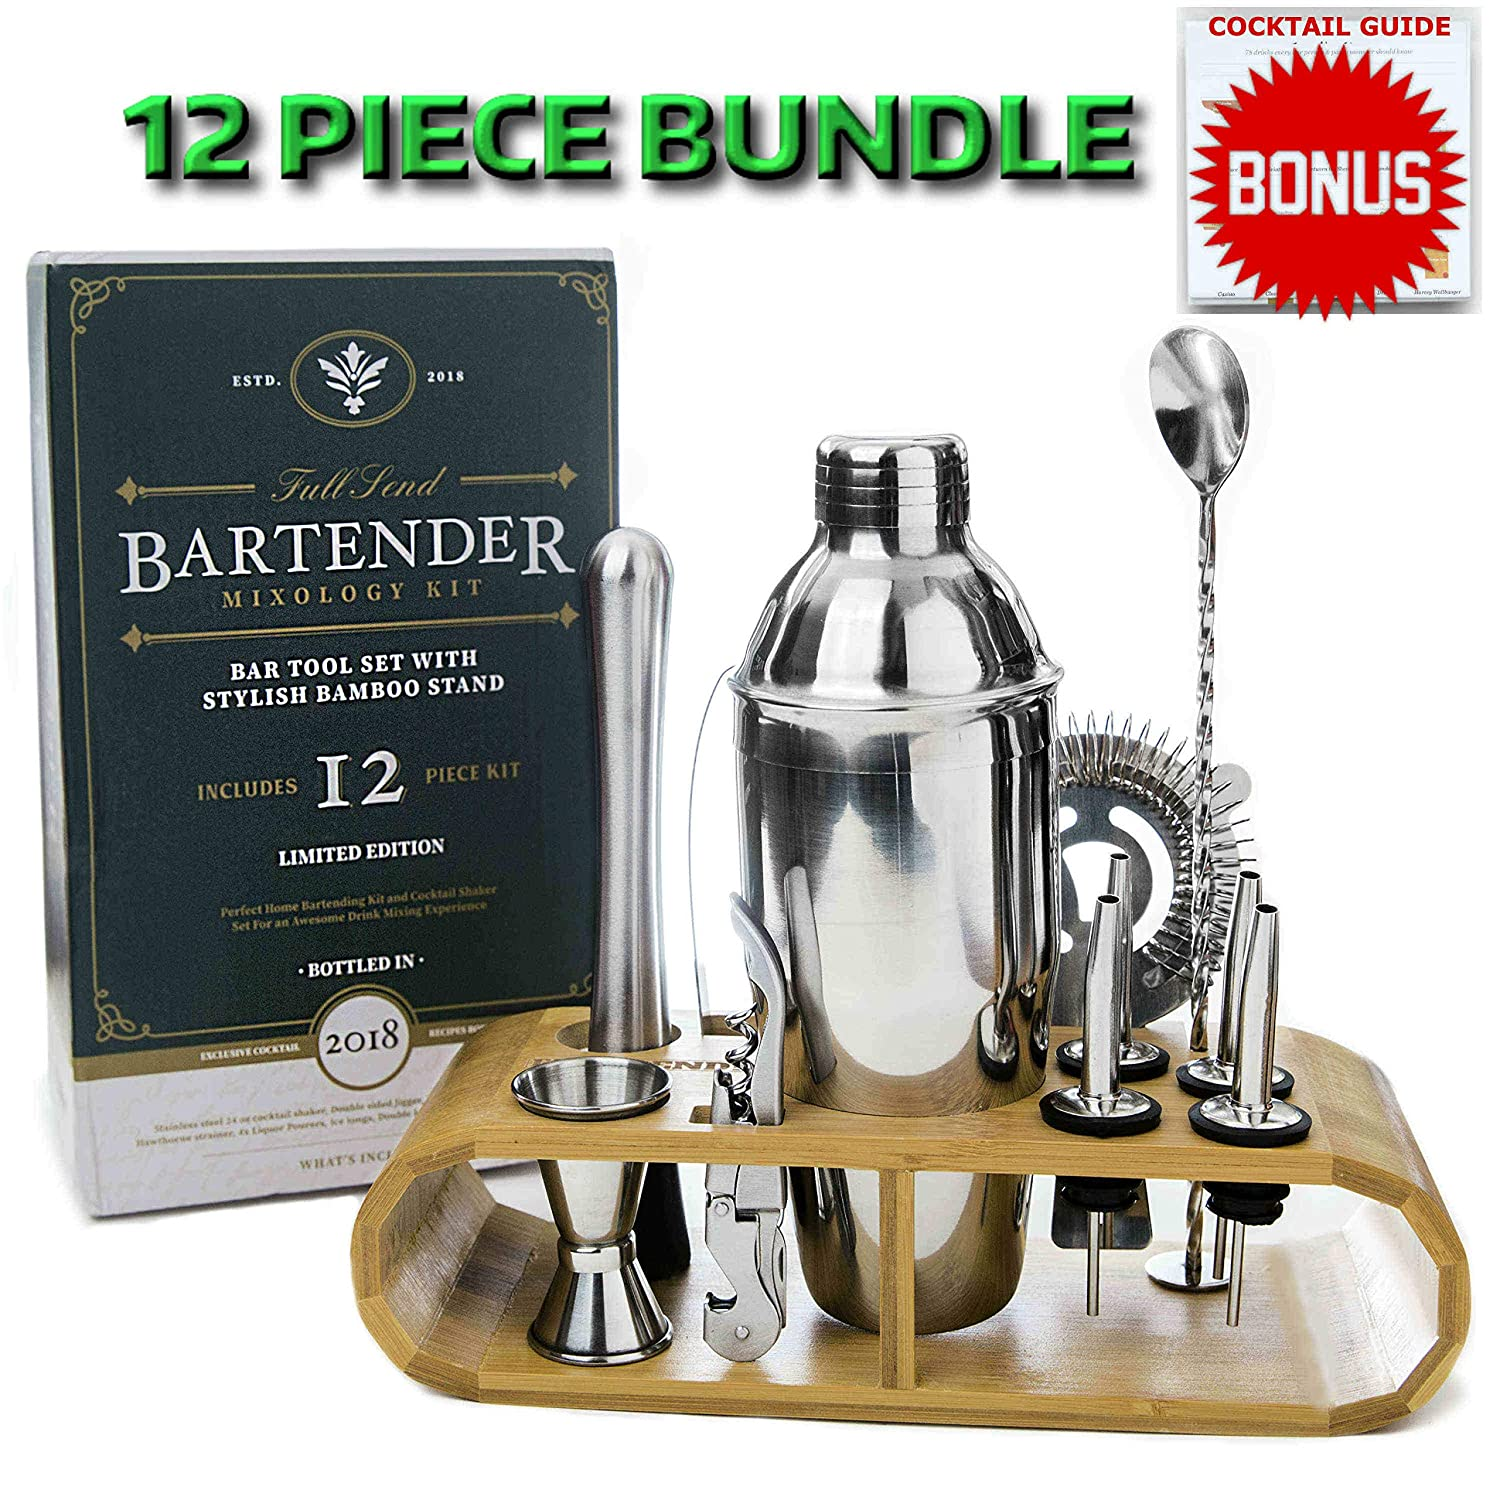 Cocktail Shaker Bartender Kit by Full Send! 12 PC Bar Tool Set with Bamboo Stand, Martini Shaker and Bar Tools - Drink Mixer, Muddler and More! Barware Cart Accessories, Bartending Mixology Supplies